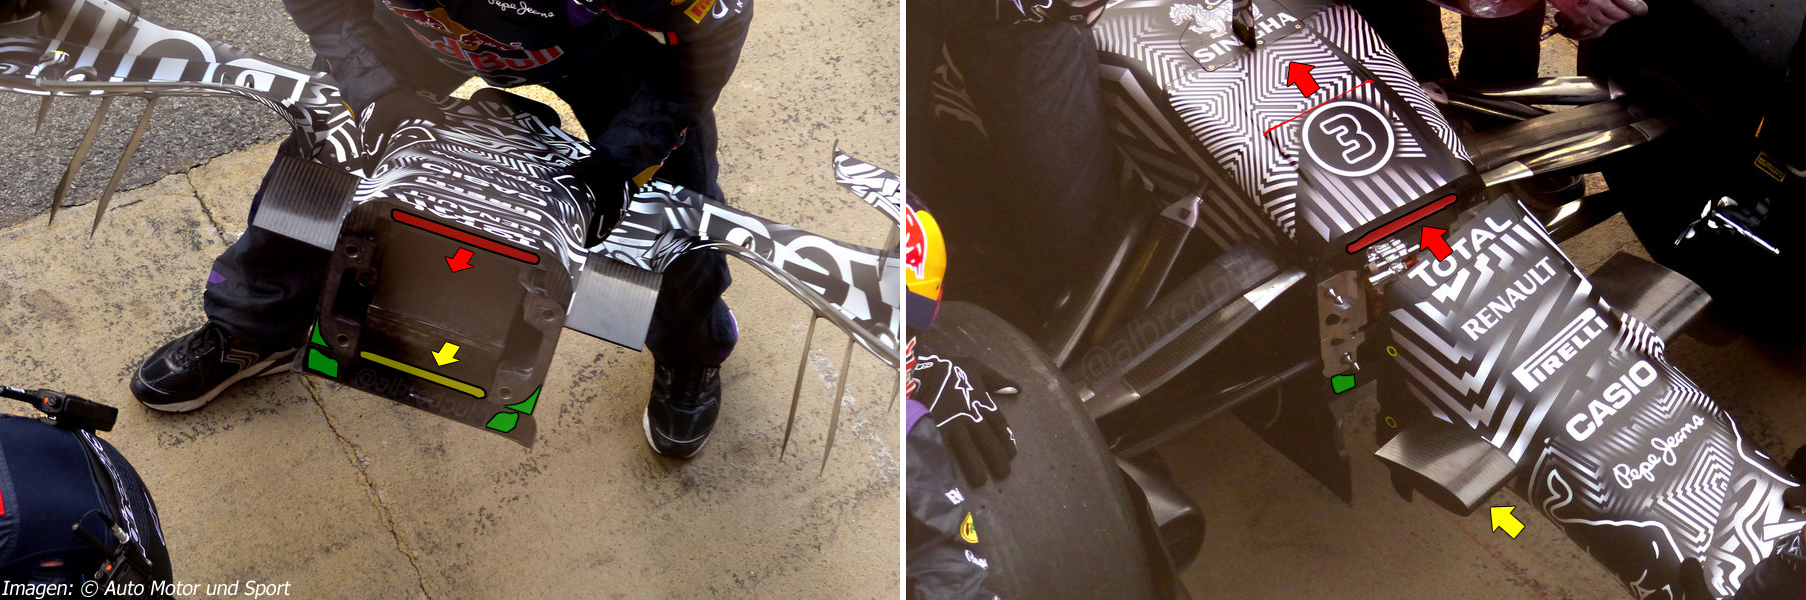 rb11-s-duct